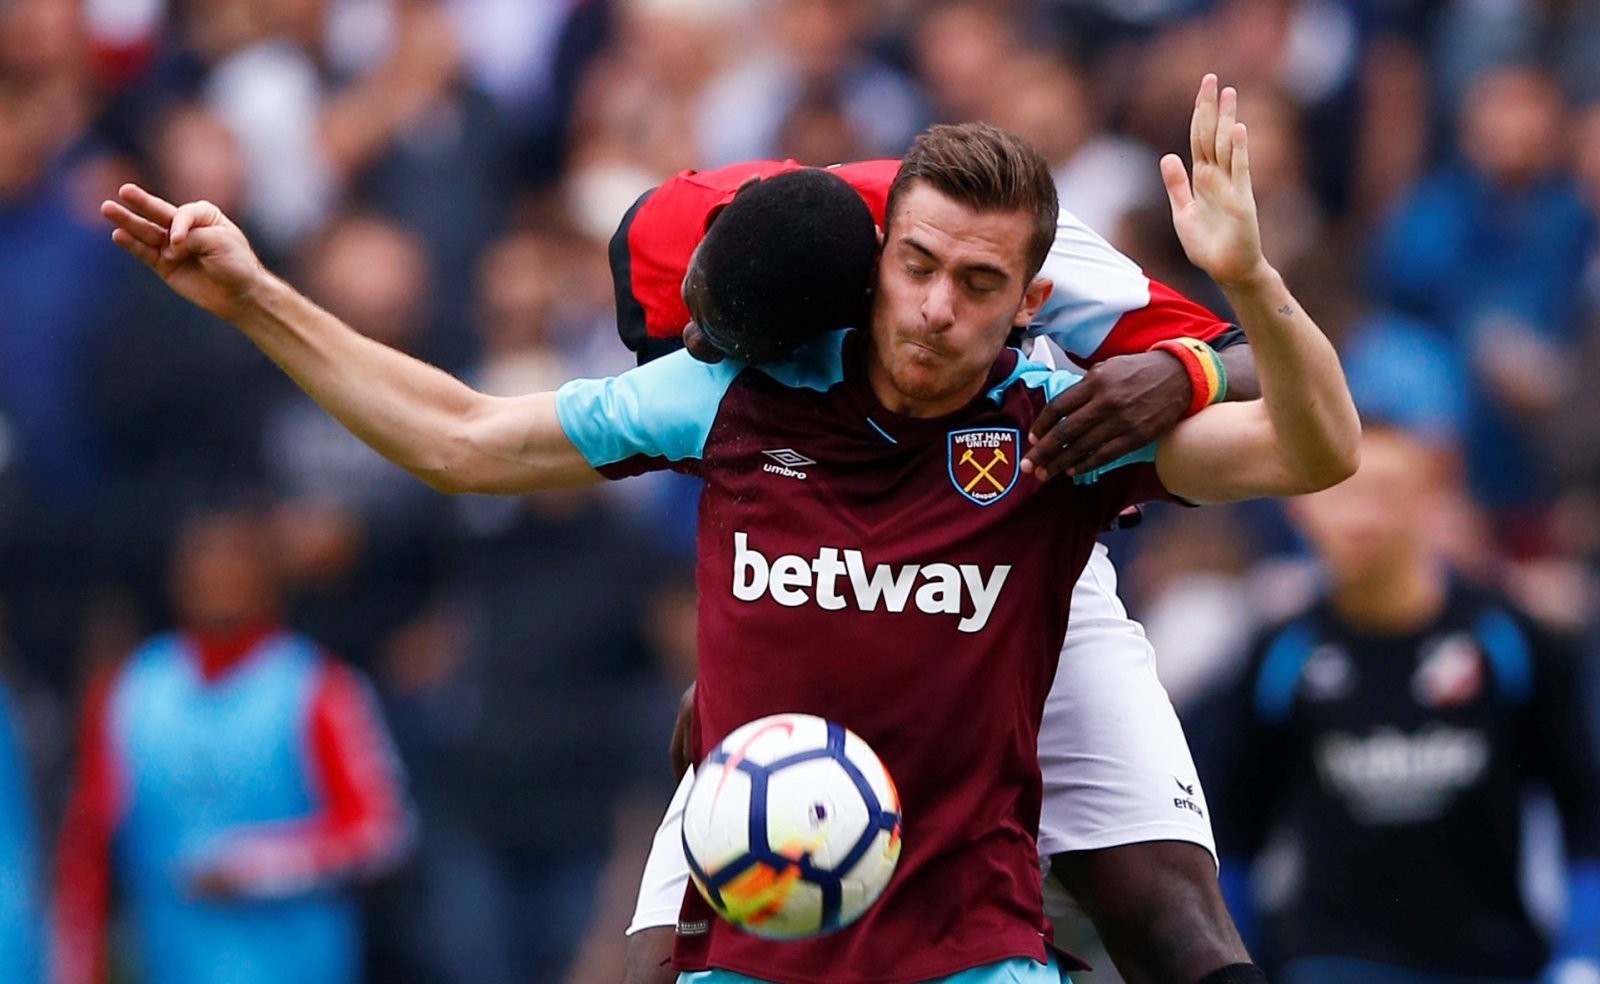 TT Introducing: West Ham's Toni Martinez is ready for his chance